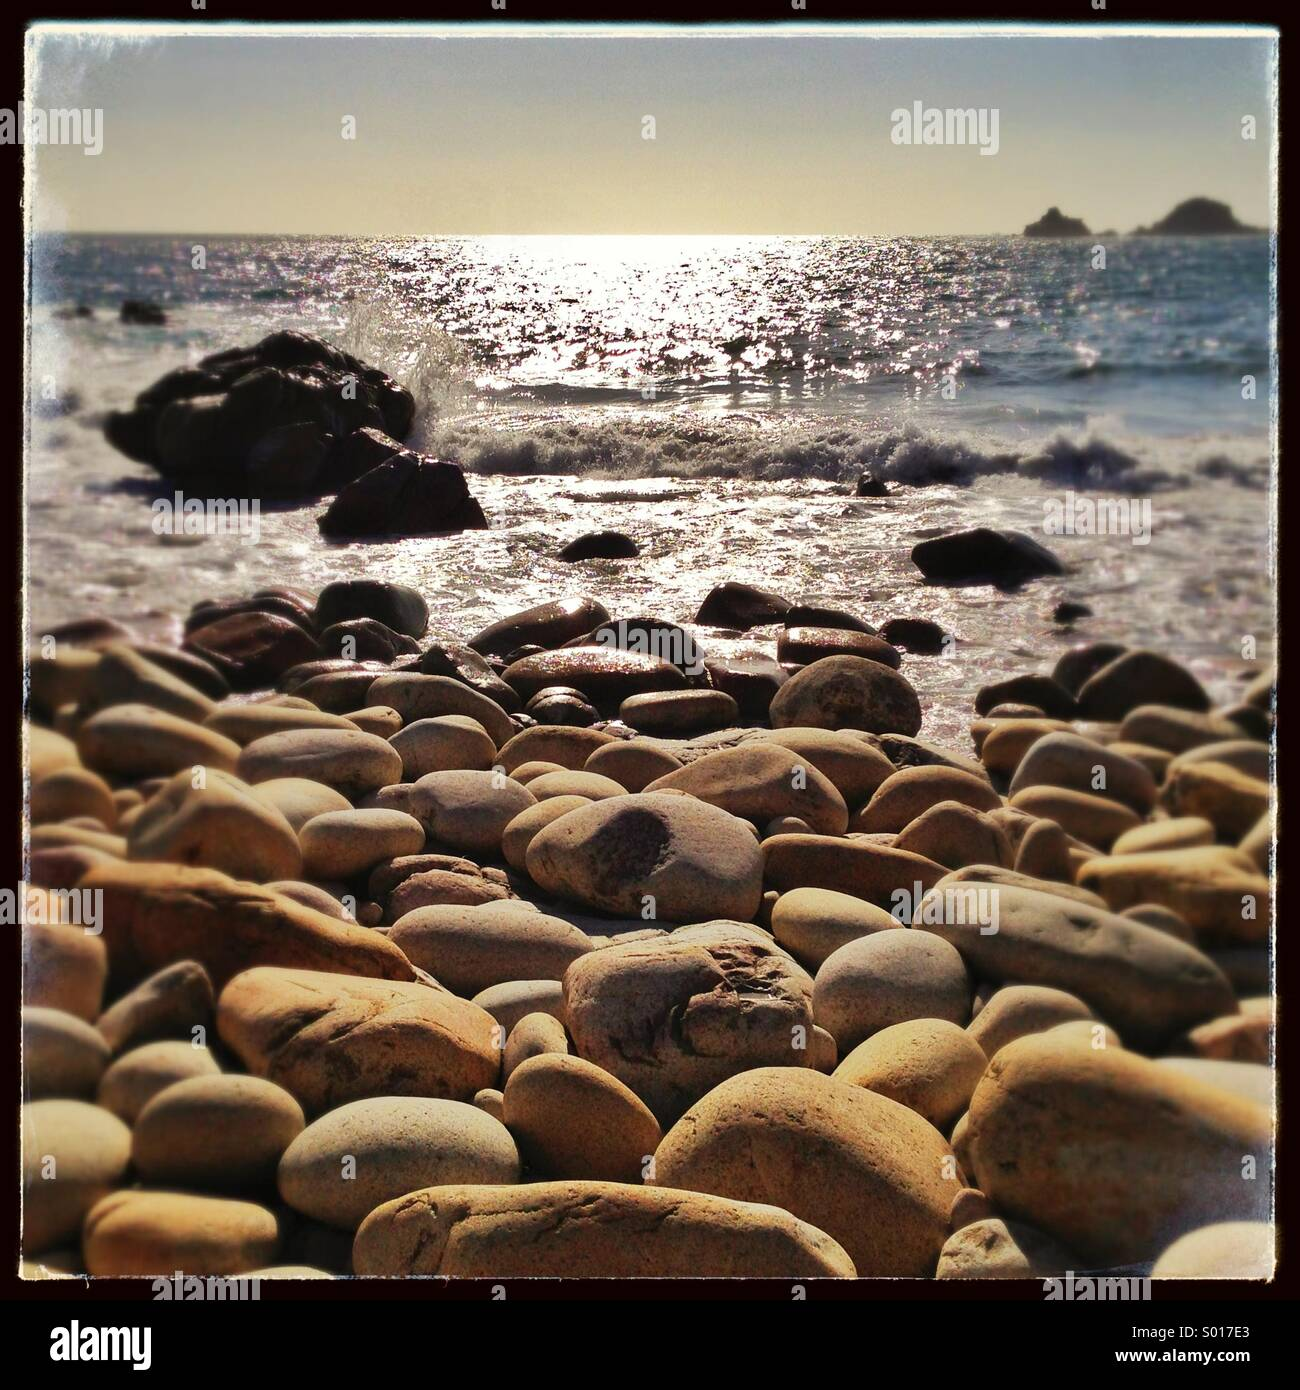 Pebbly beach with big stones - Stock Image